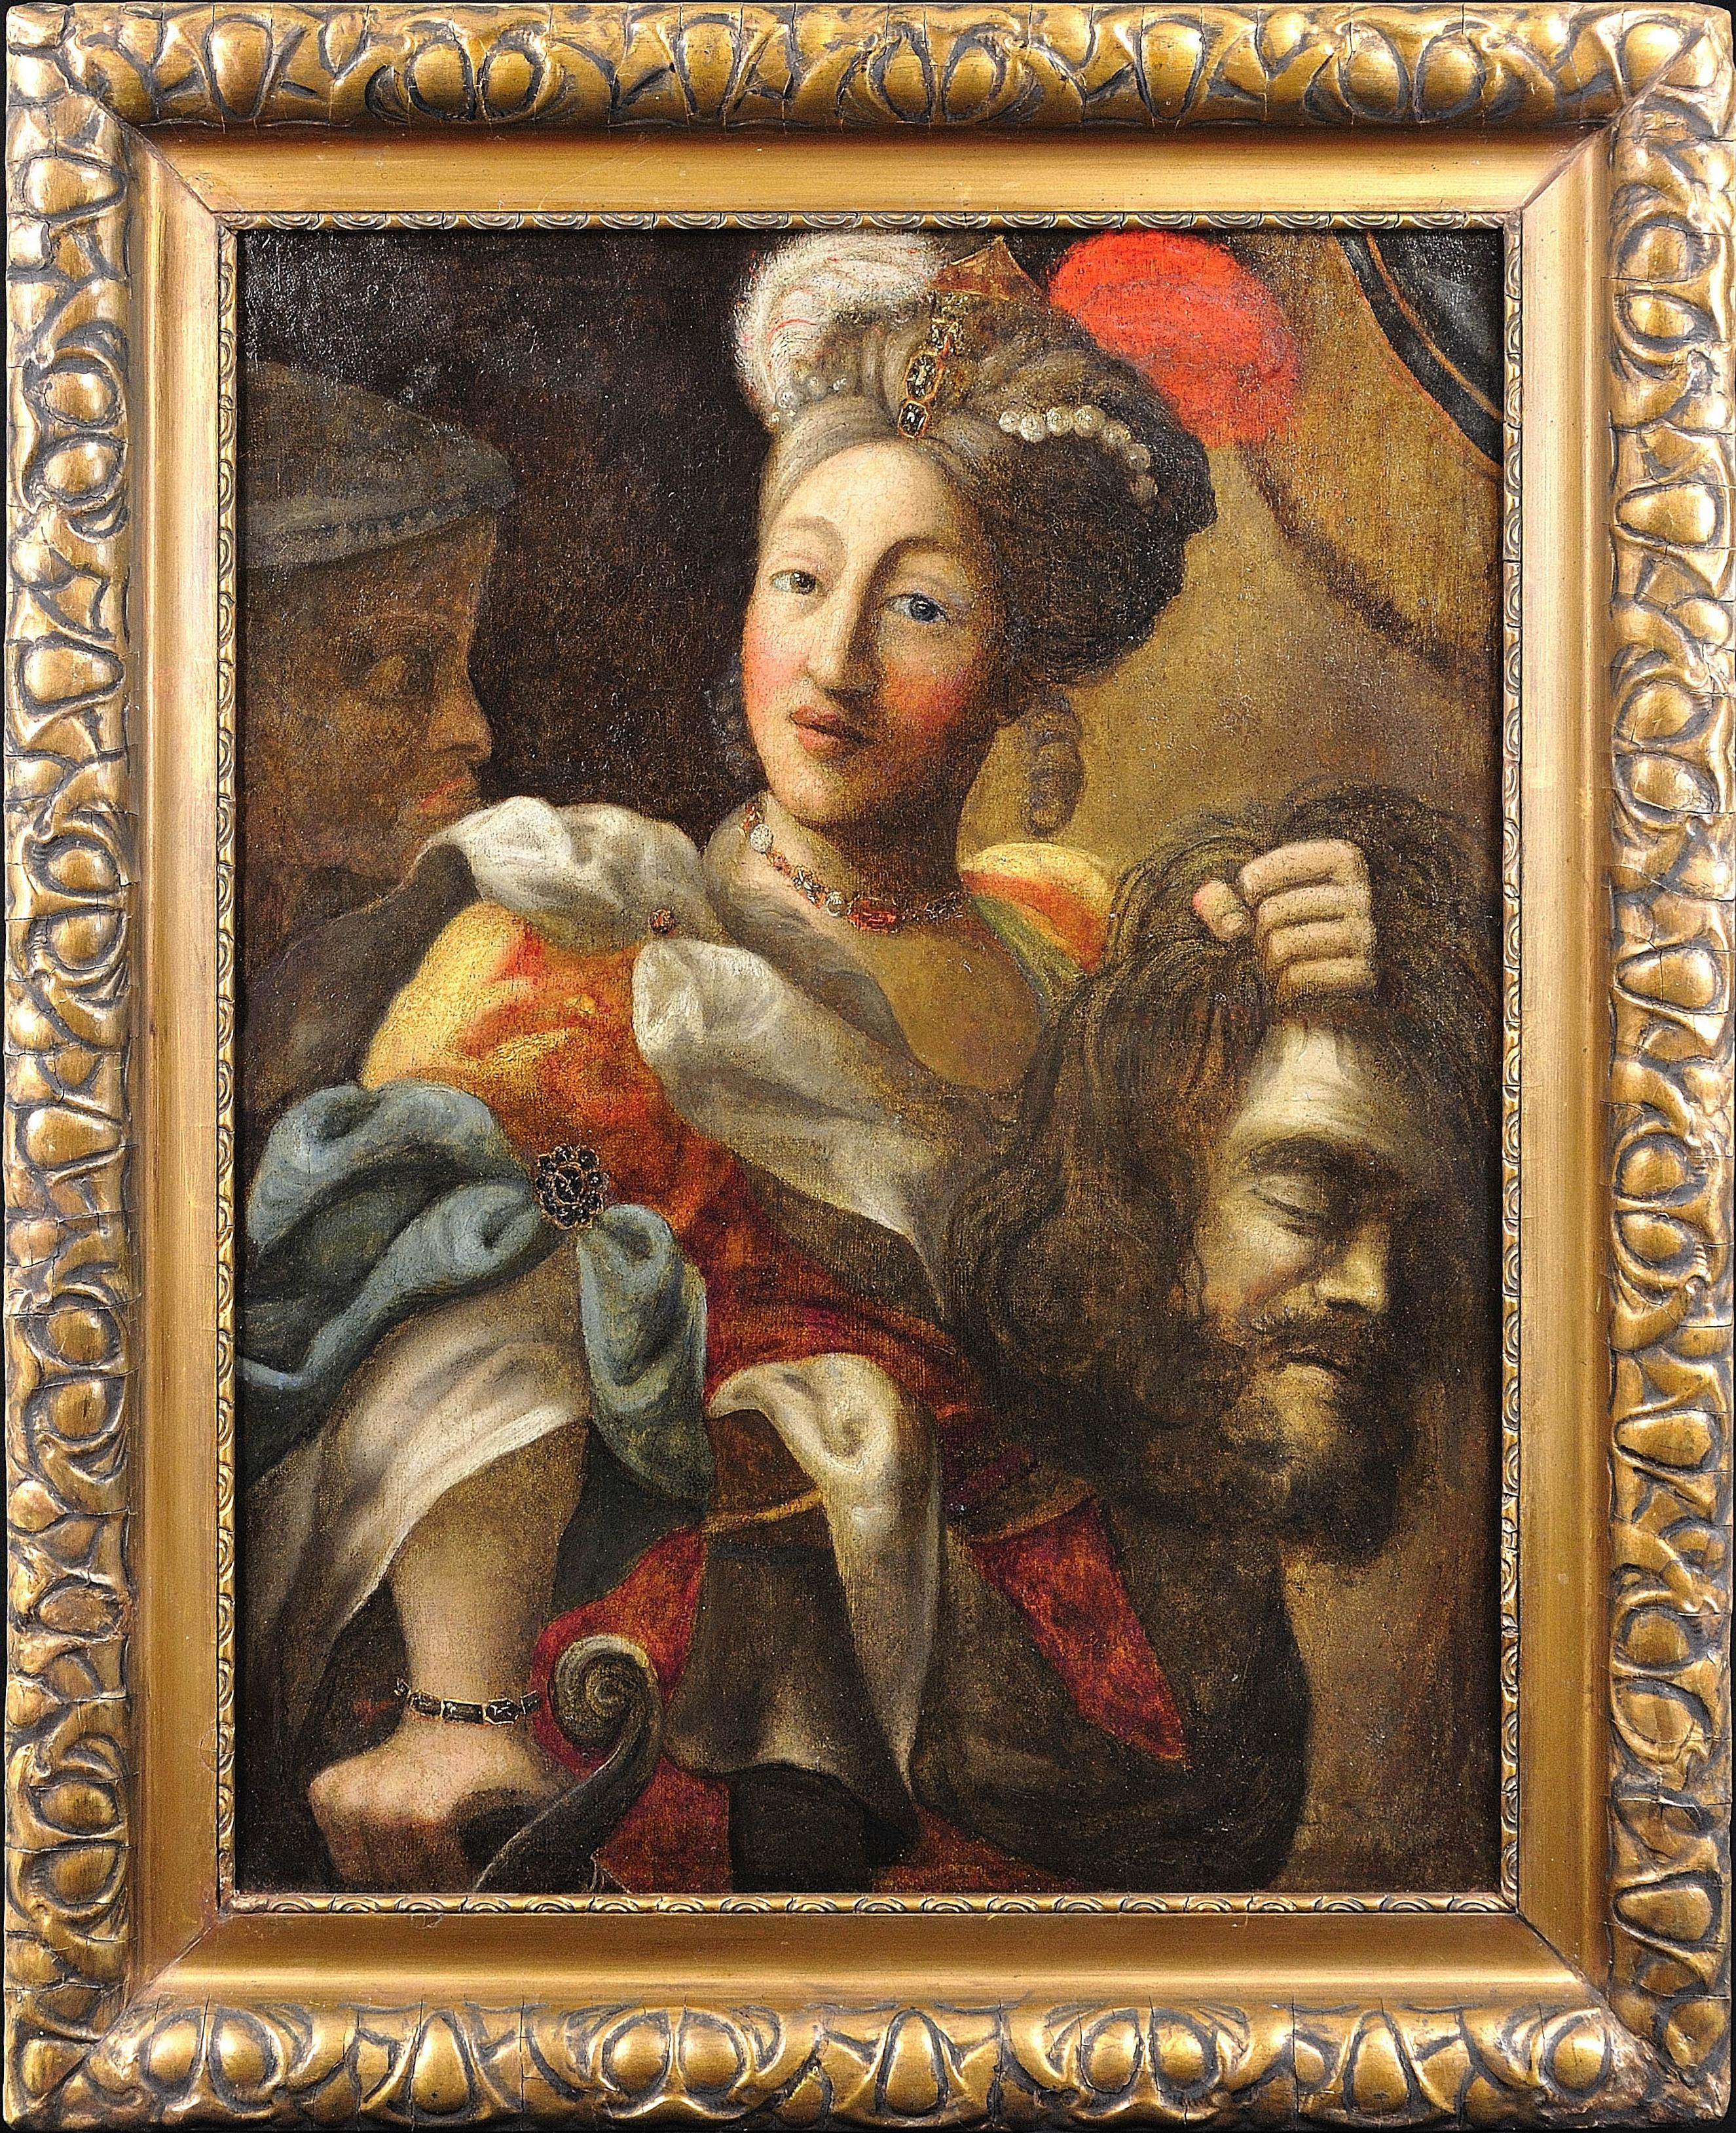 Follower of Rubens. Judith and the Head of Holofernes. Bible. Highly Decorative.